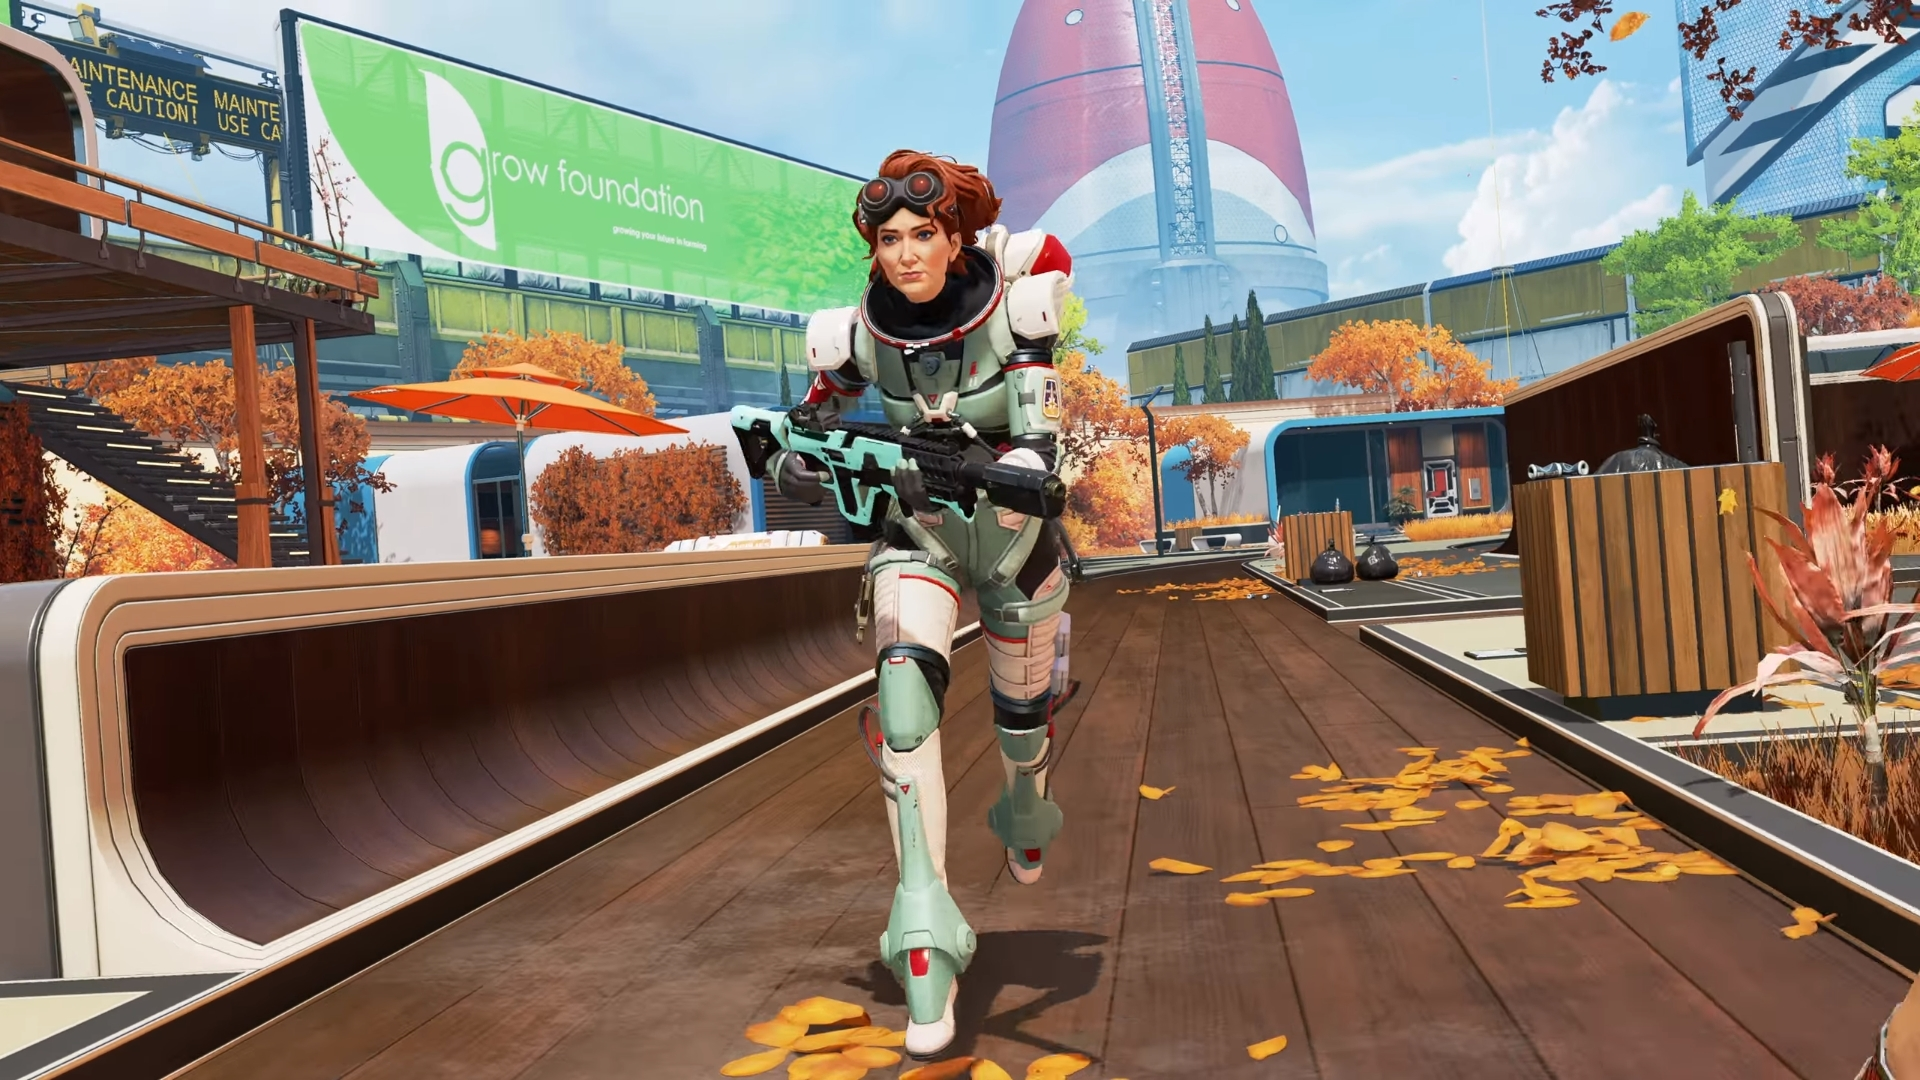 horizon apex legends season 7 new character